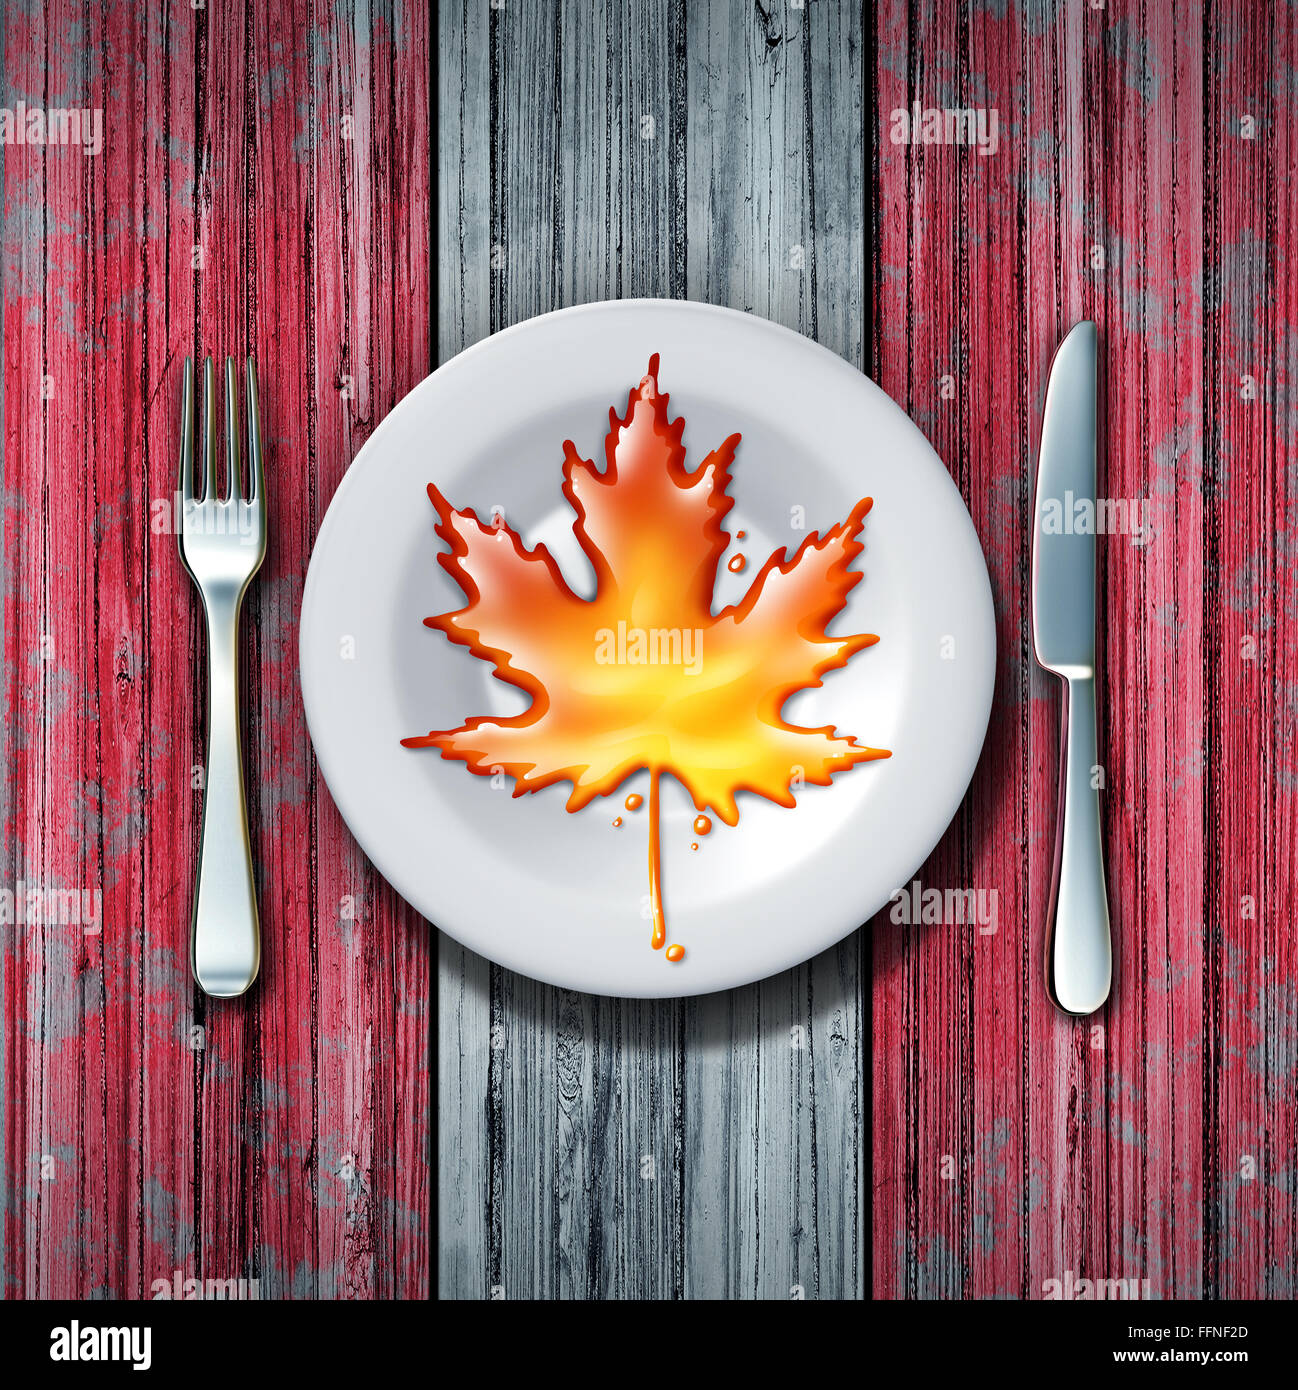 Canadian maple syrup leaf on a plate with fork and knife as a sweet golden brown delicious liquid representing a - Stock Image